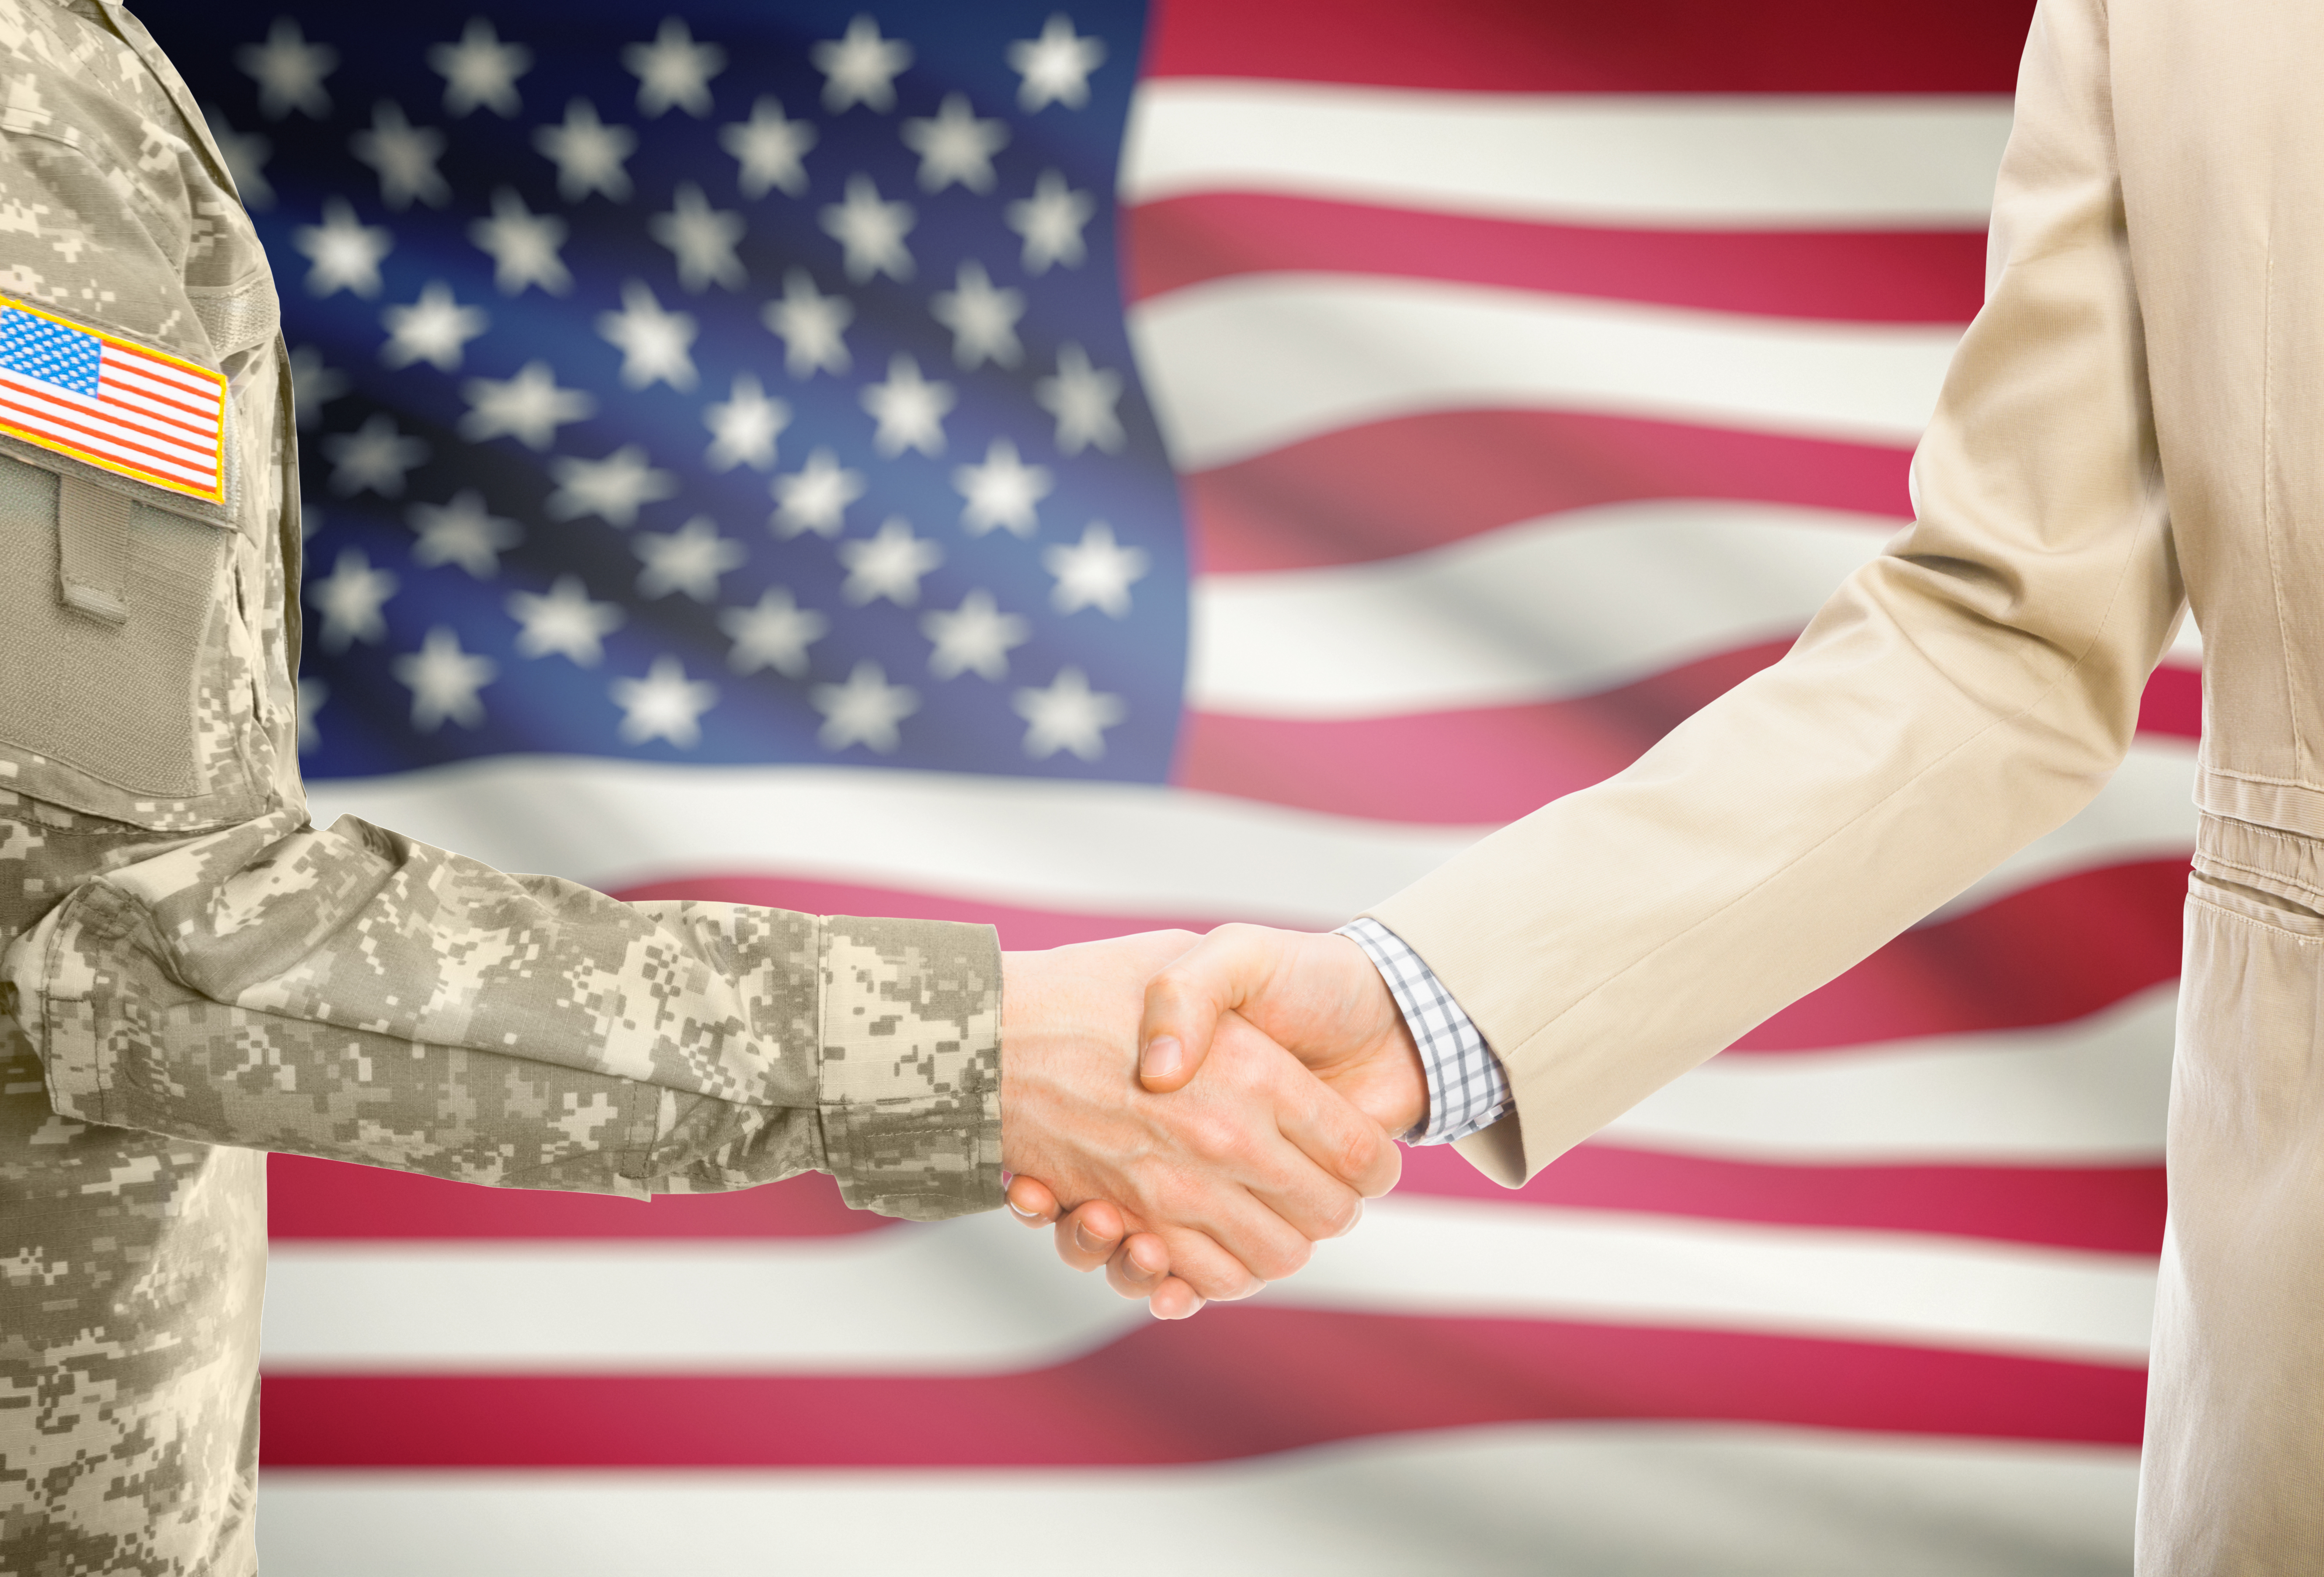 USA military man in uniform and civil man in suit shaking hands with national flag on background – United States